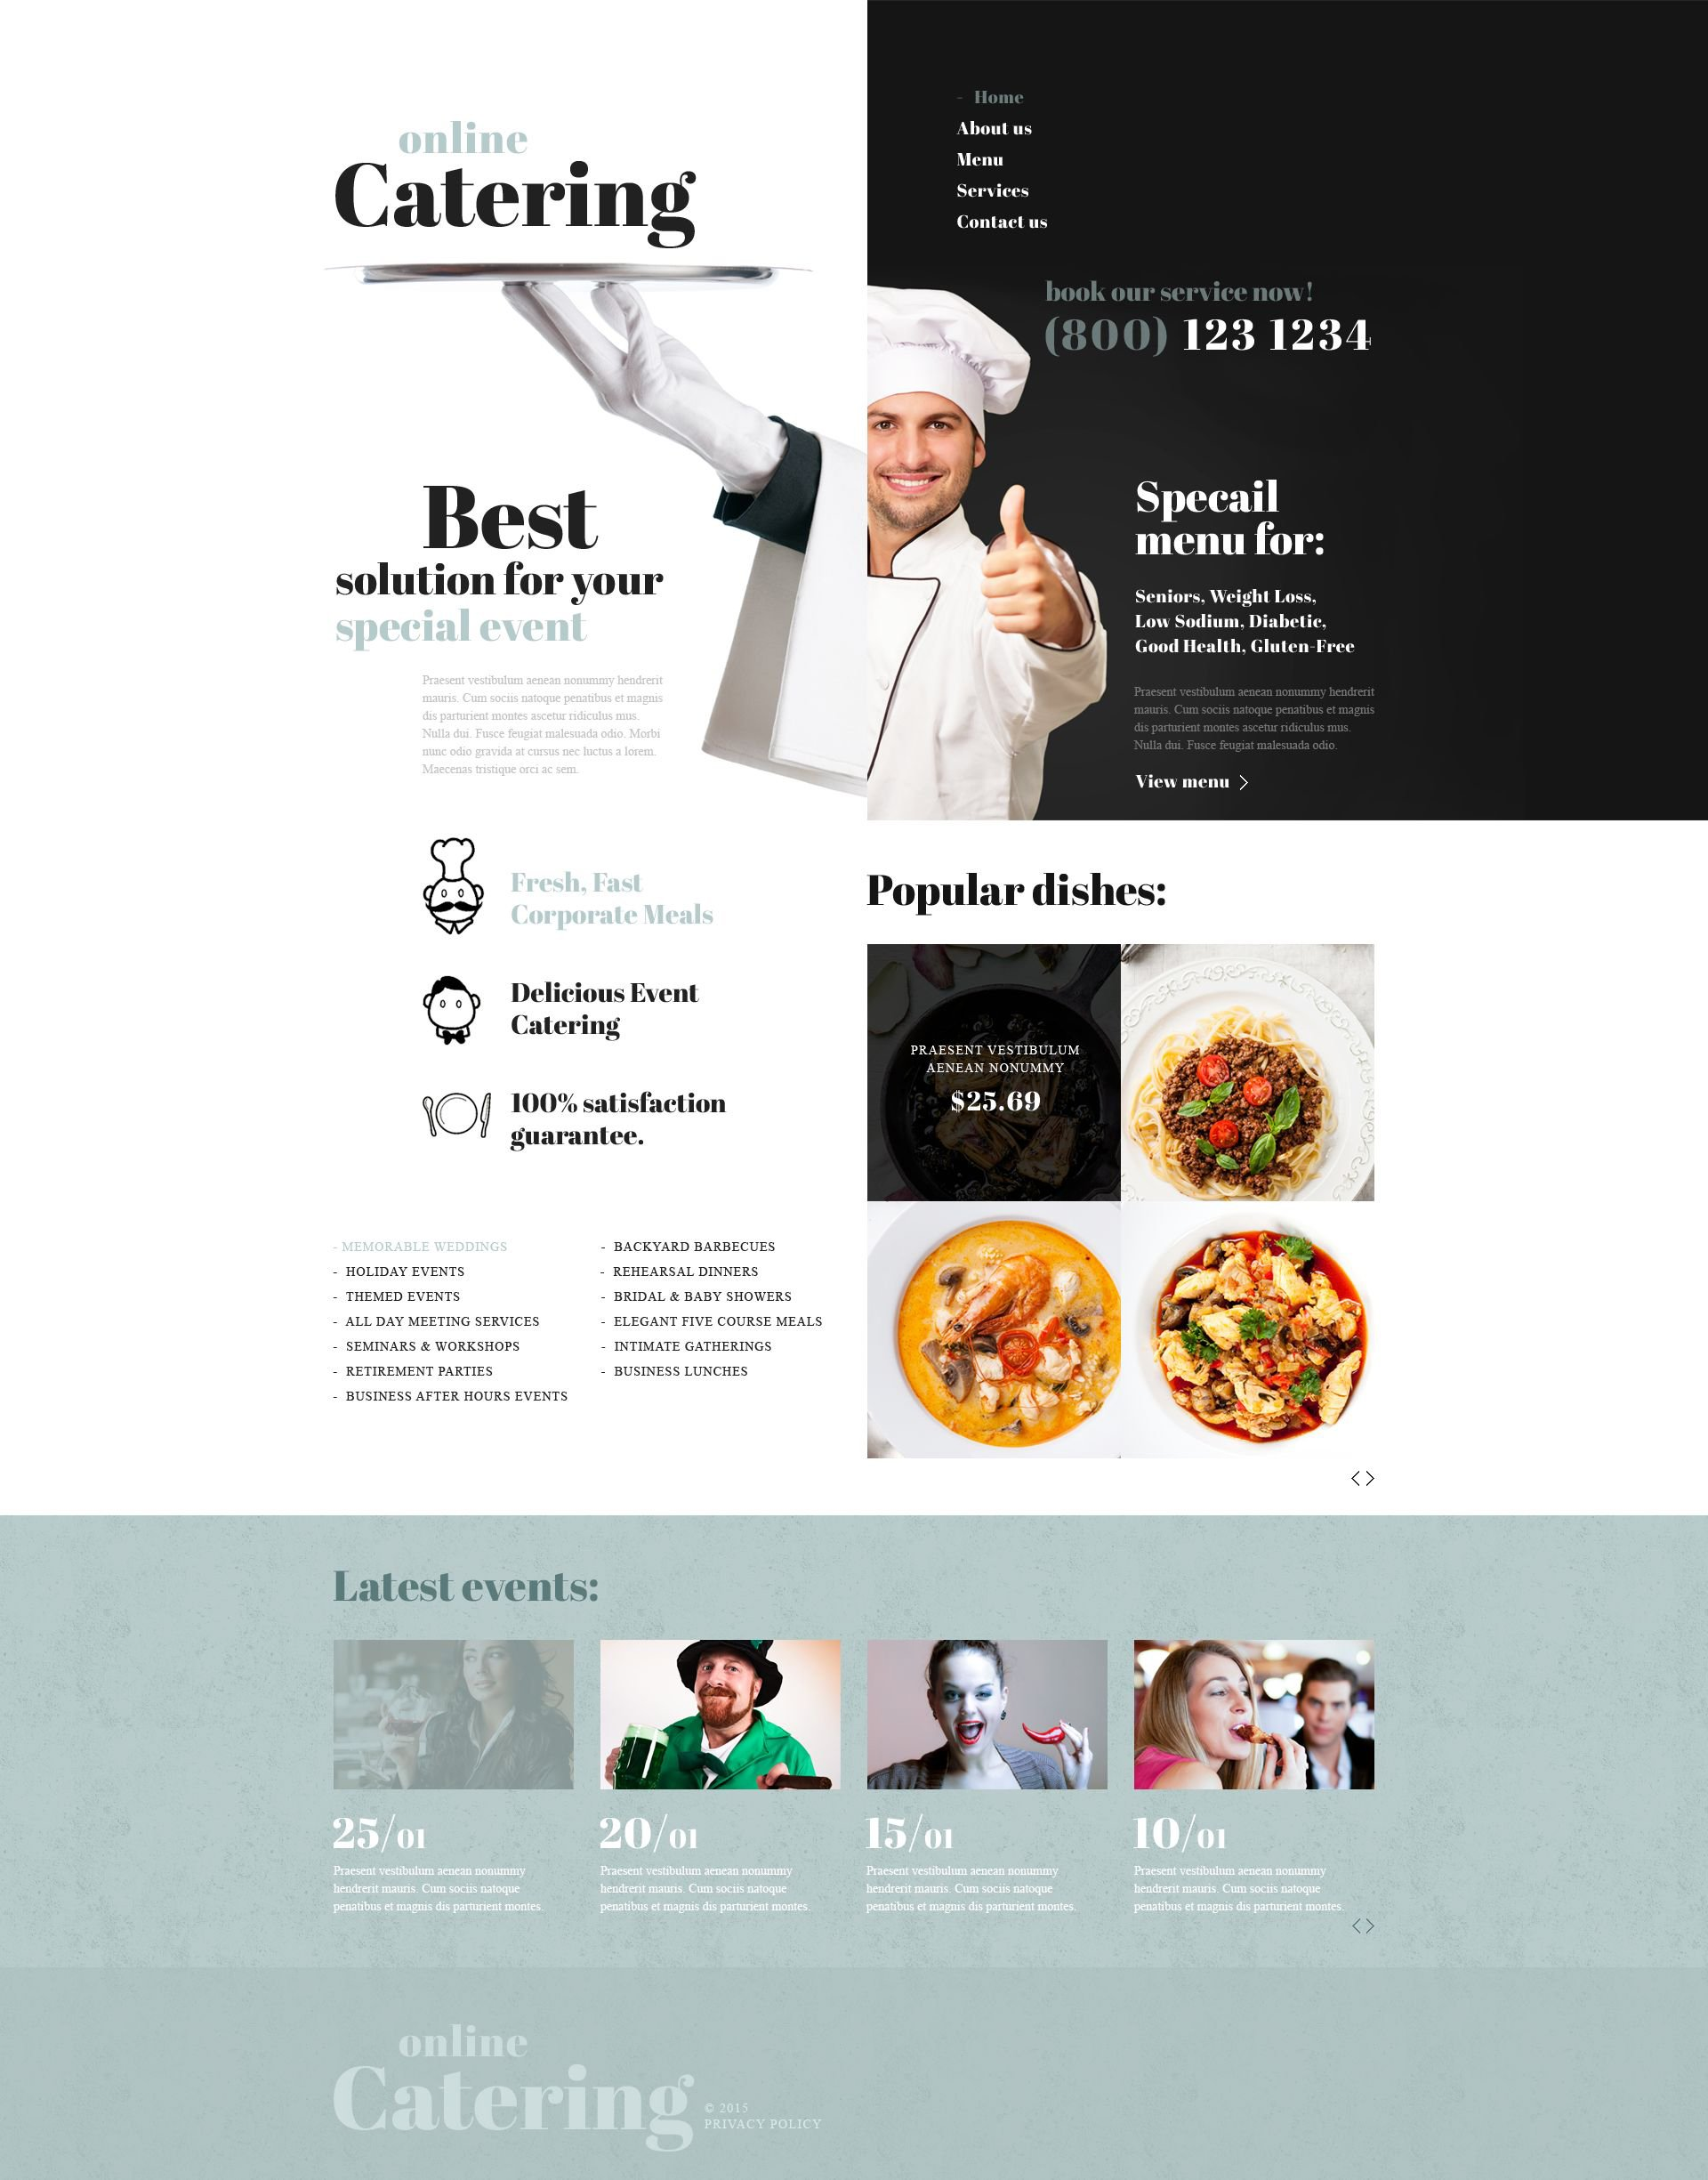 The Catering Online Services Company Bootstrap Design 53579, one of the best website templates of its kind (food & drink, most popular), also known as catering online services company website template, service website template, drinks website template, equipment website template, services website template, specials website template, menu website template, cake website template, catering website template, delivery website template, lunch website template, dinner website template, products website template, tasty website template, fruits website template, sweets website template, cookies website template, receipts and related with catering online services company, service, drinks, equipment, services, specials, menu, cake, catering, delivery, lunch, dinner, products, tasty, fruits, sweets, cookies, receipts, etc.